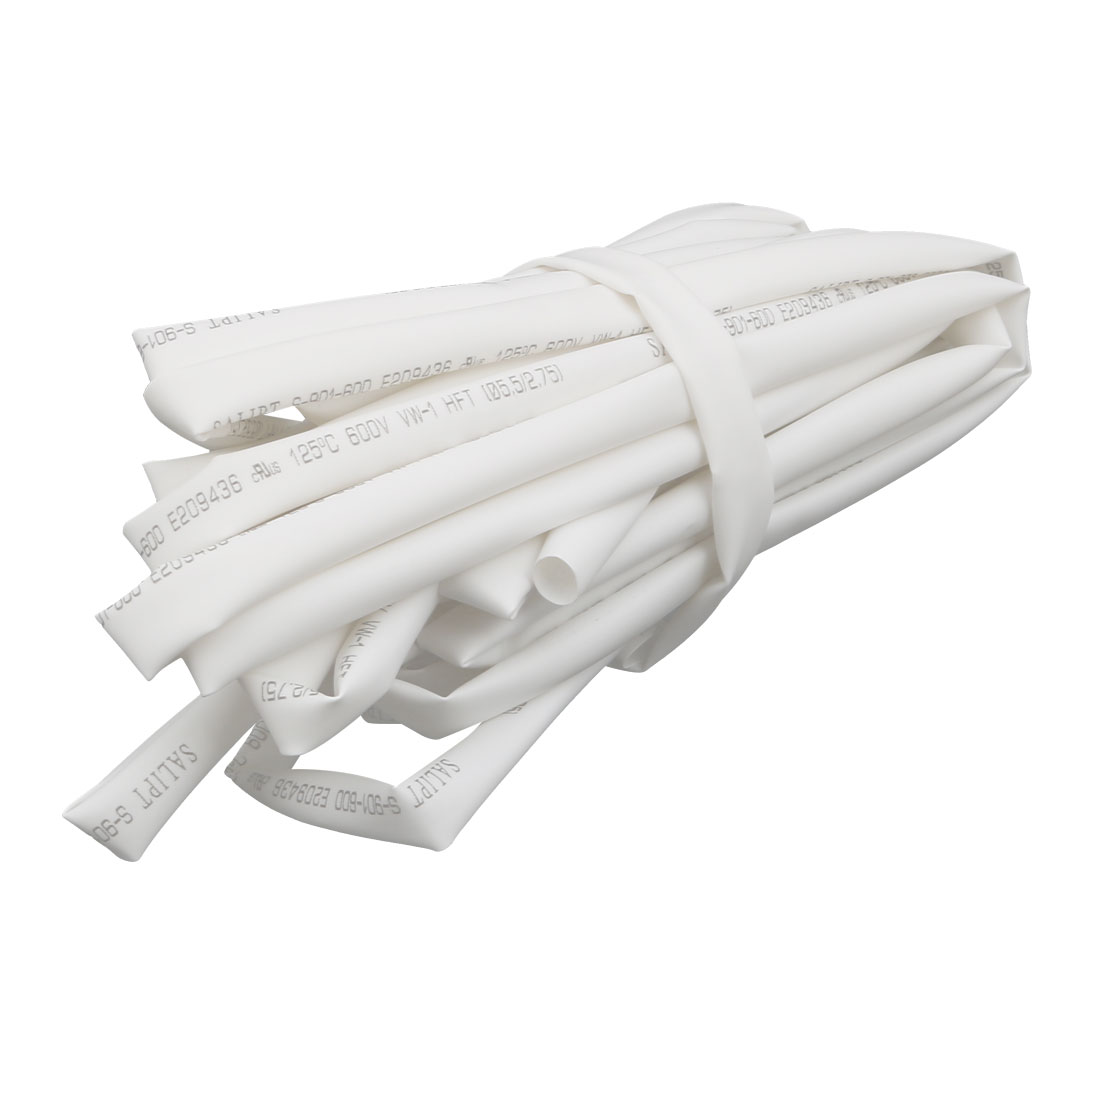 5M Length 5.5mm Inner Dia Polyolefin Insulated Heat Shrink Tube Wire Wrap White